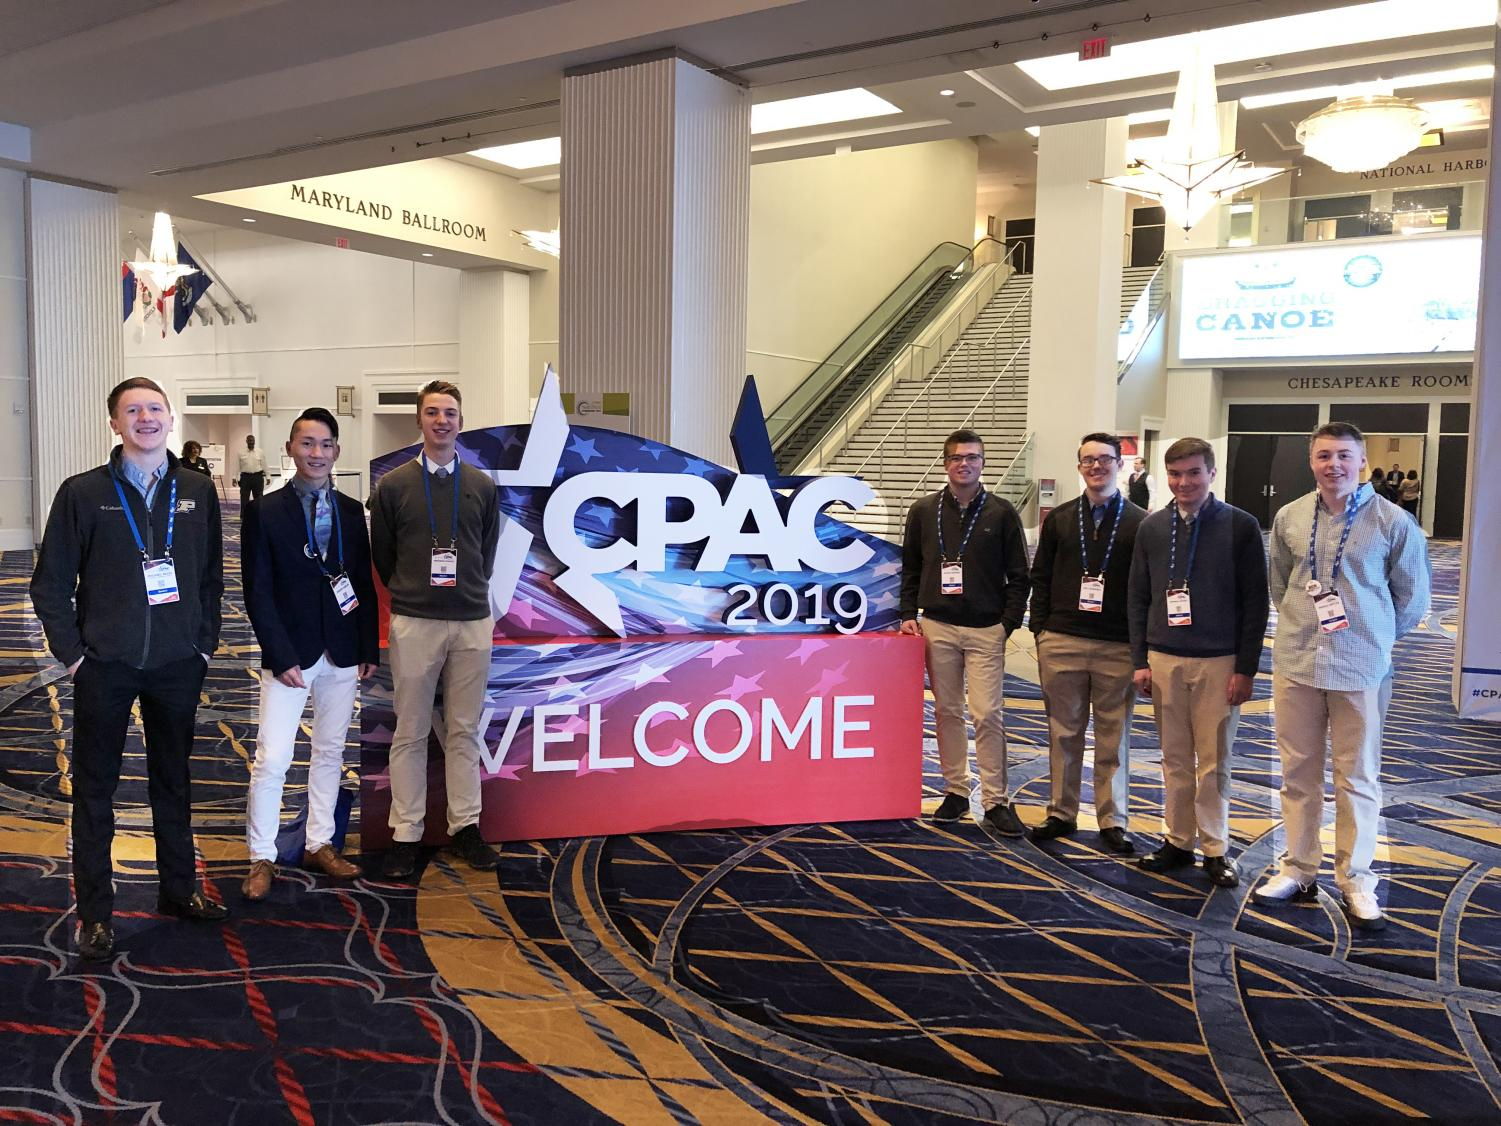 APUSH students head to Washington, DC for the annual CPAC conference.